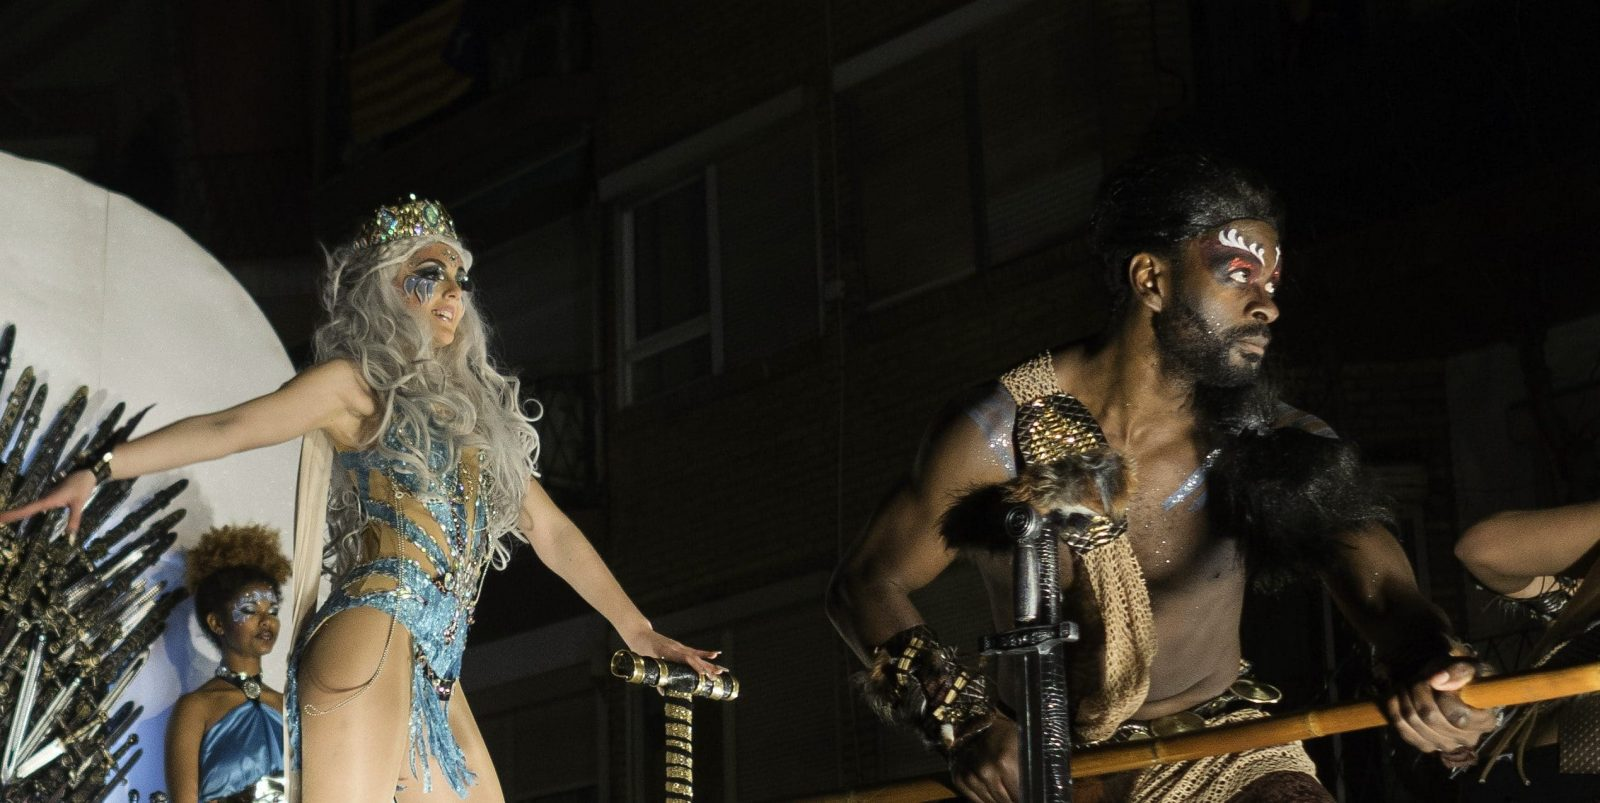 Tarragona, among the best Carnivals of the World